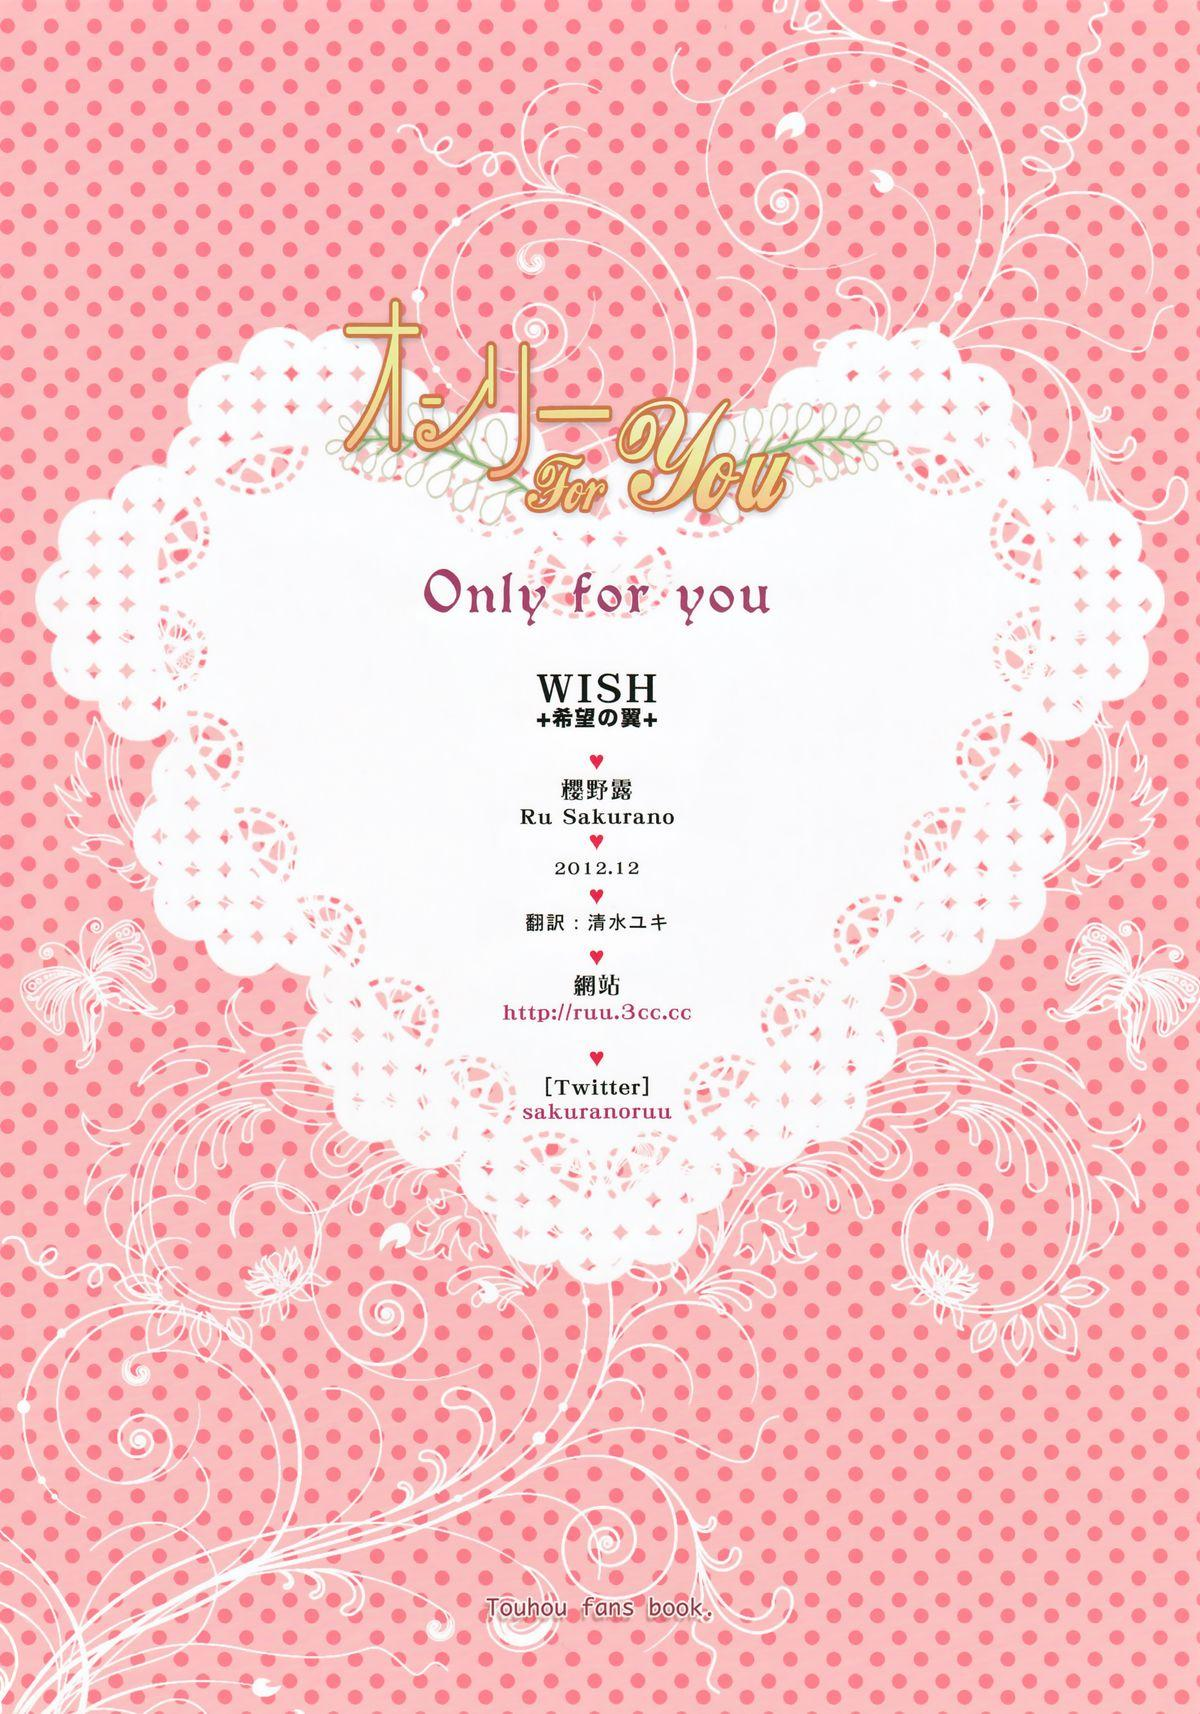 Only for you 24